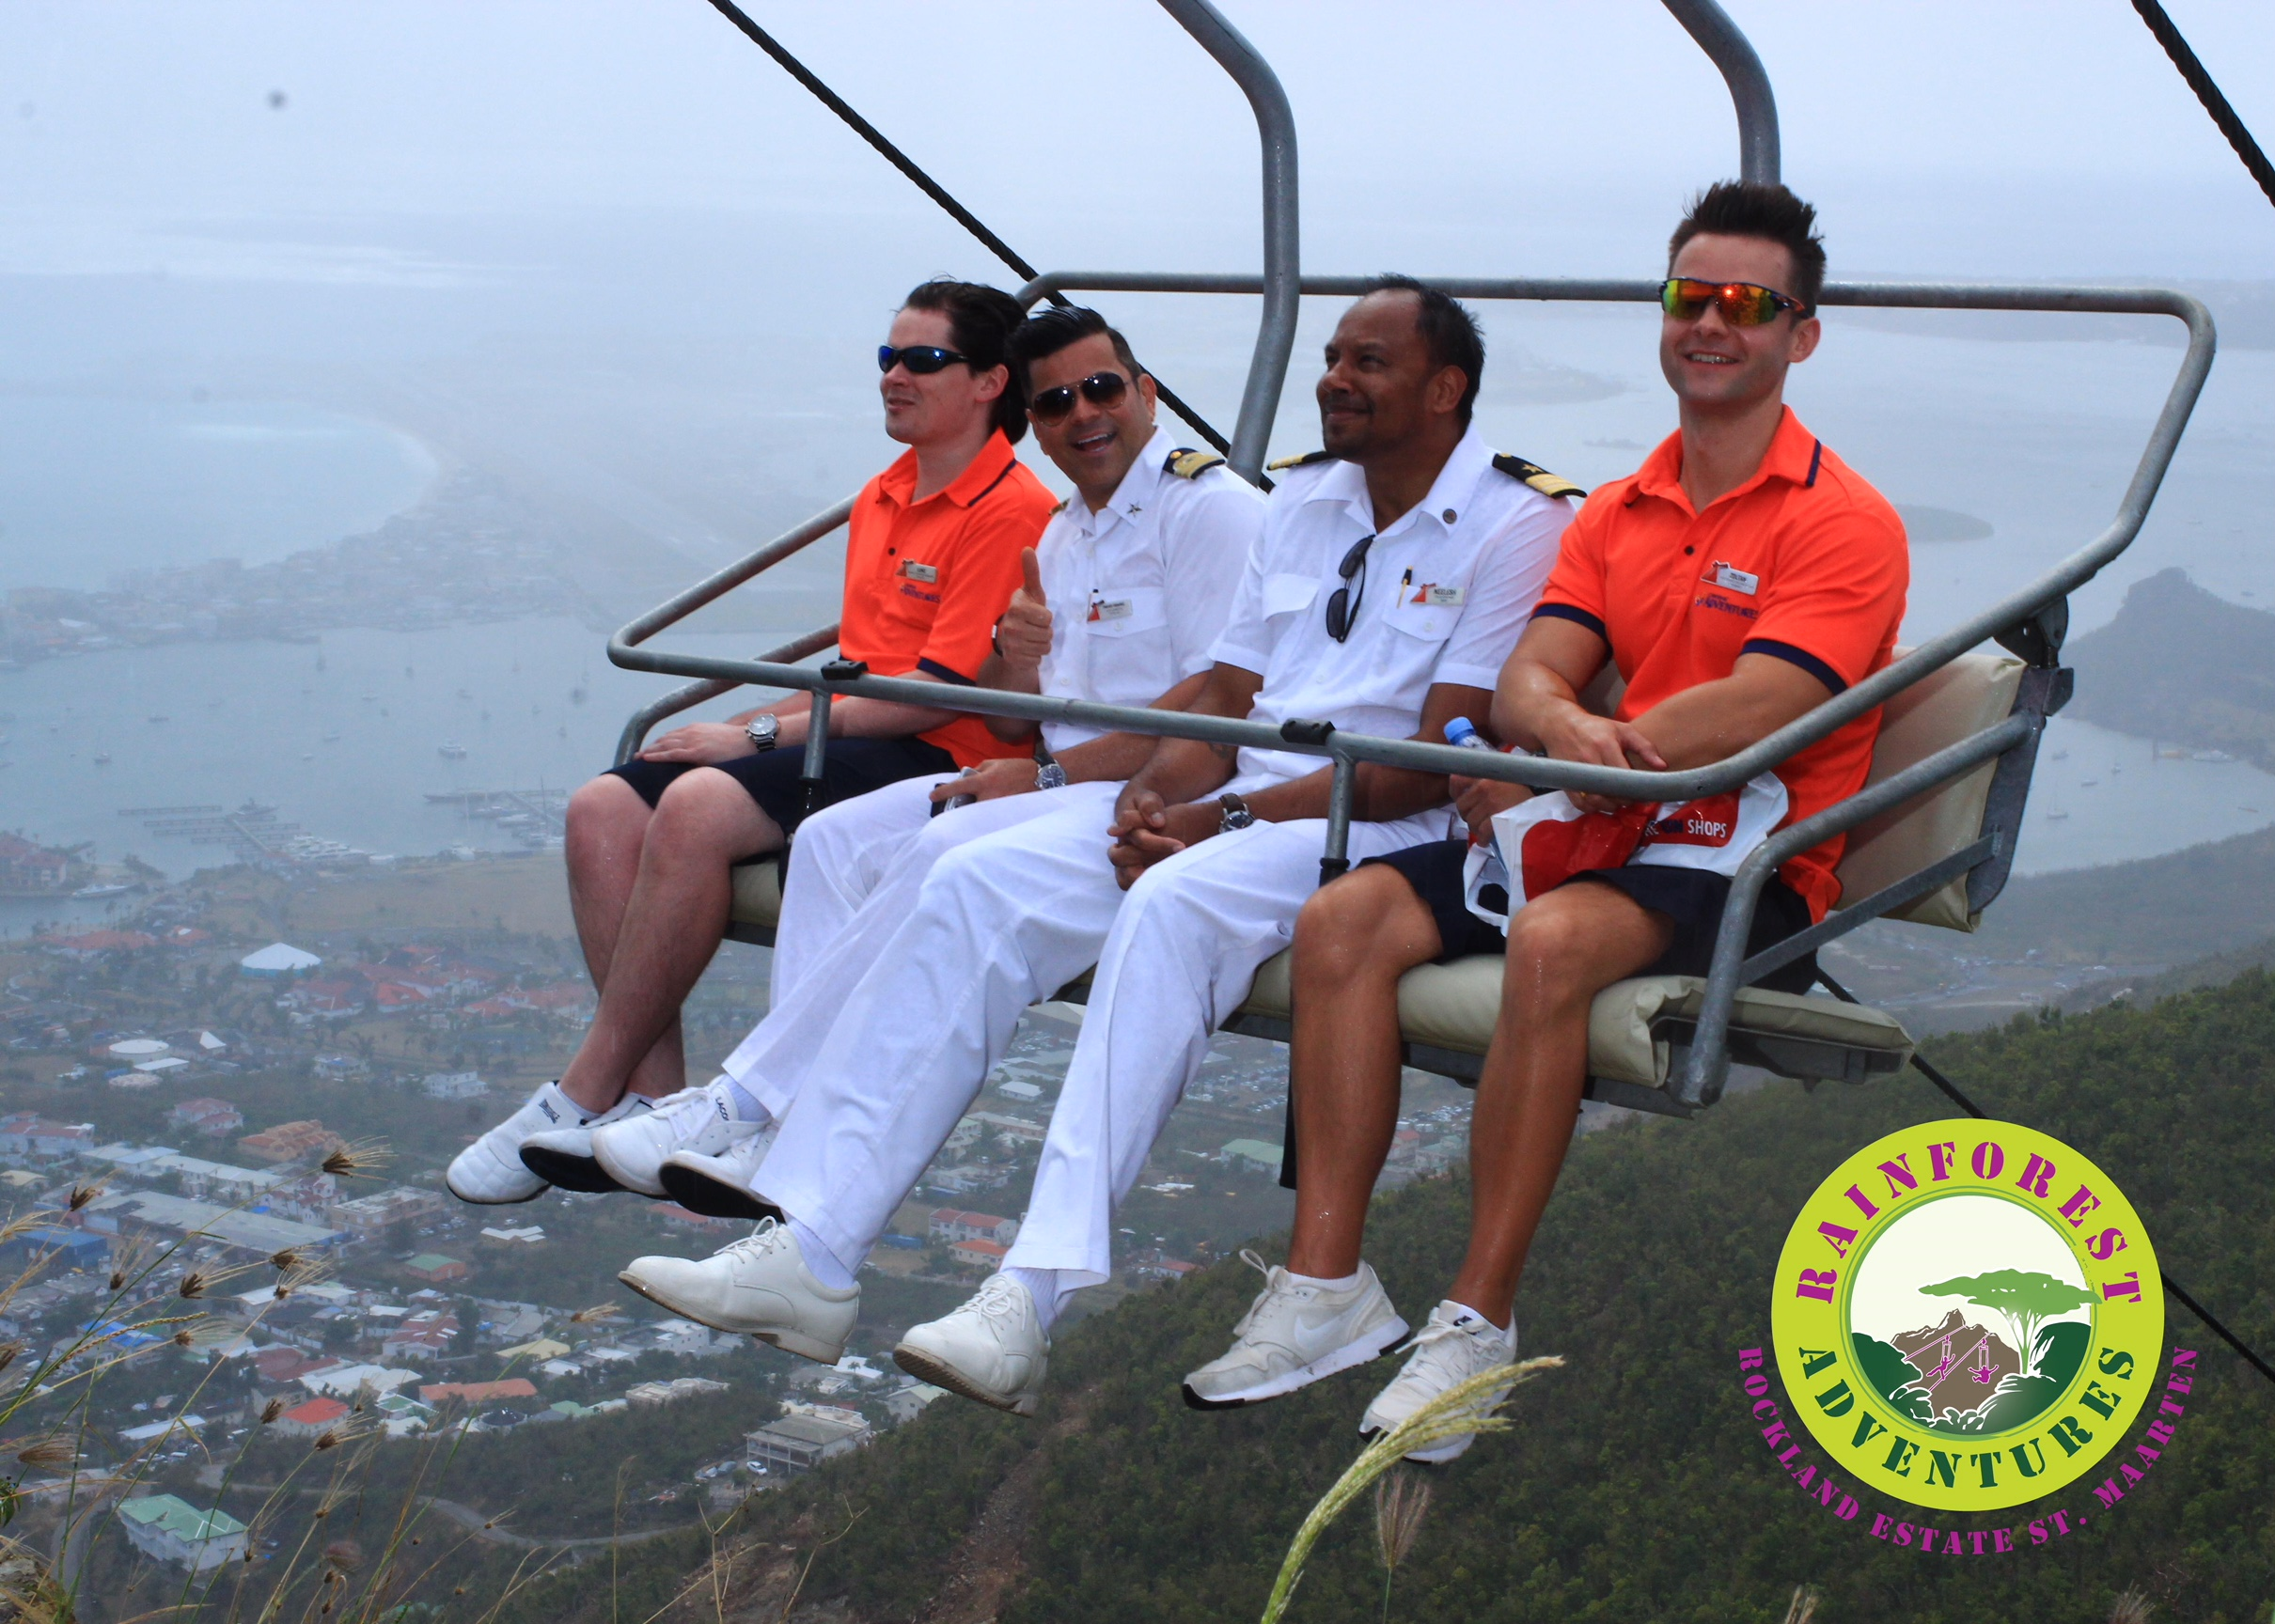 Grand Opening of St. Maarten Eco-Adventure Park Marked with Ribbon-Cutting Ceremony with Carnival Sunshine Officers, Carnival Corp. Executives, Island Officials